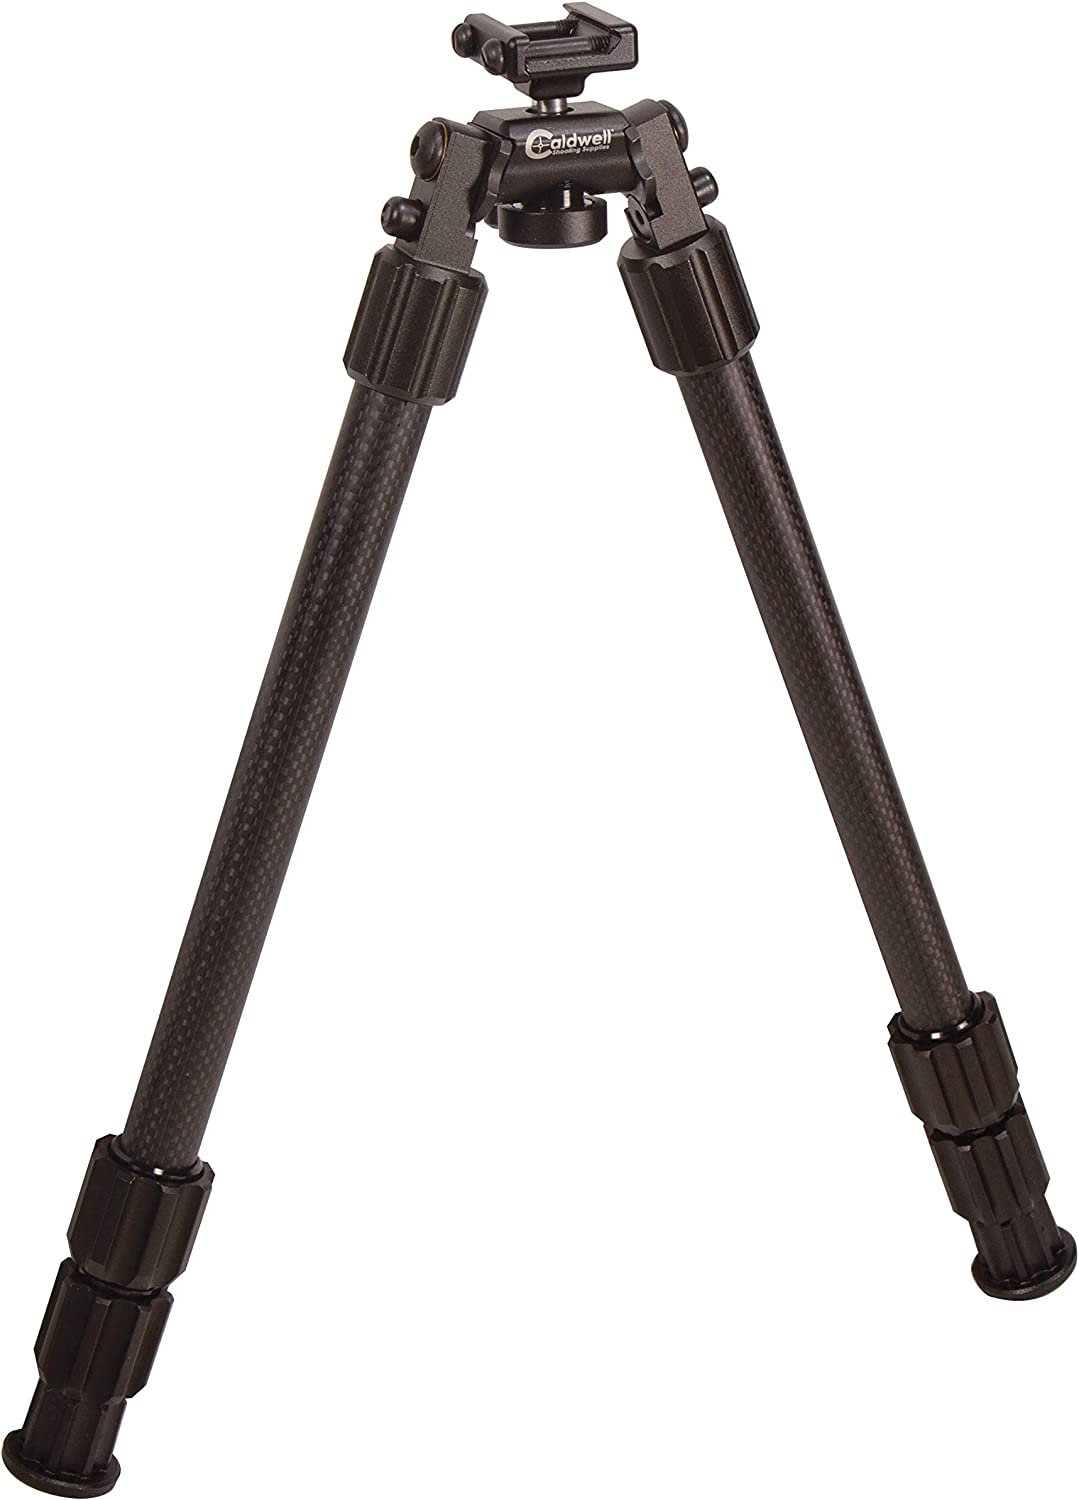 Caldwell Accumax Premium Carbon Fiber Pic Rail Bipod with Twist Lock Quick-Deployment Legs for Mounting on Long Gun Rifle for Tactical Shooting Range and Sport